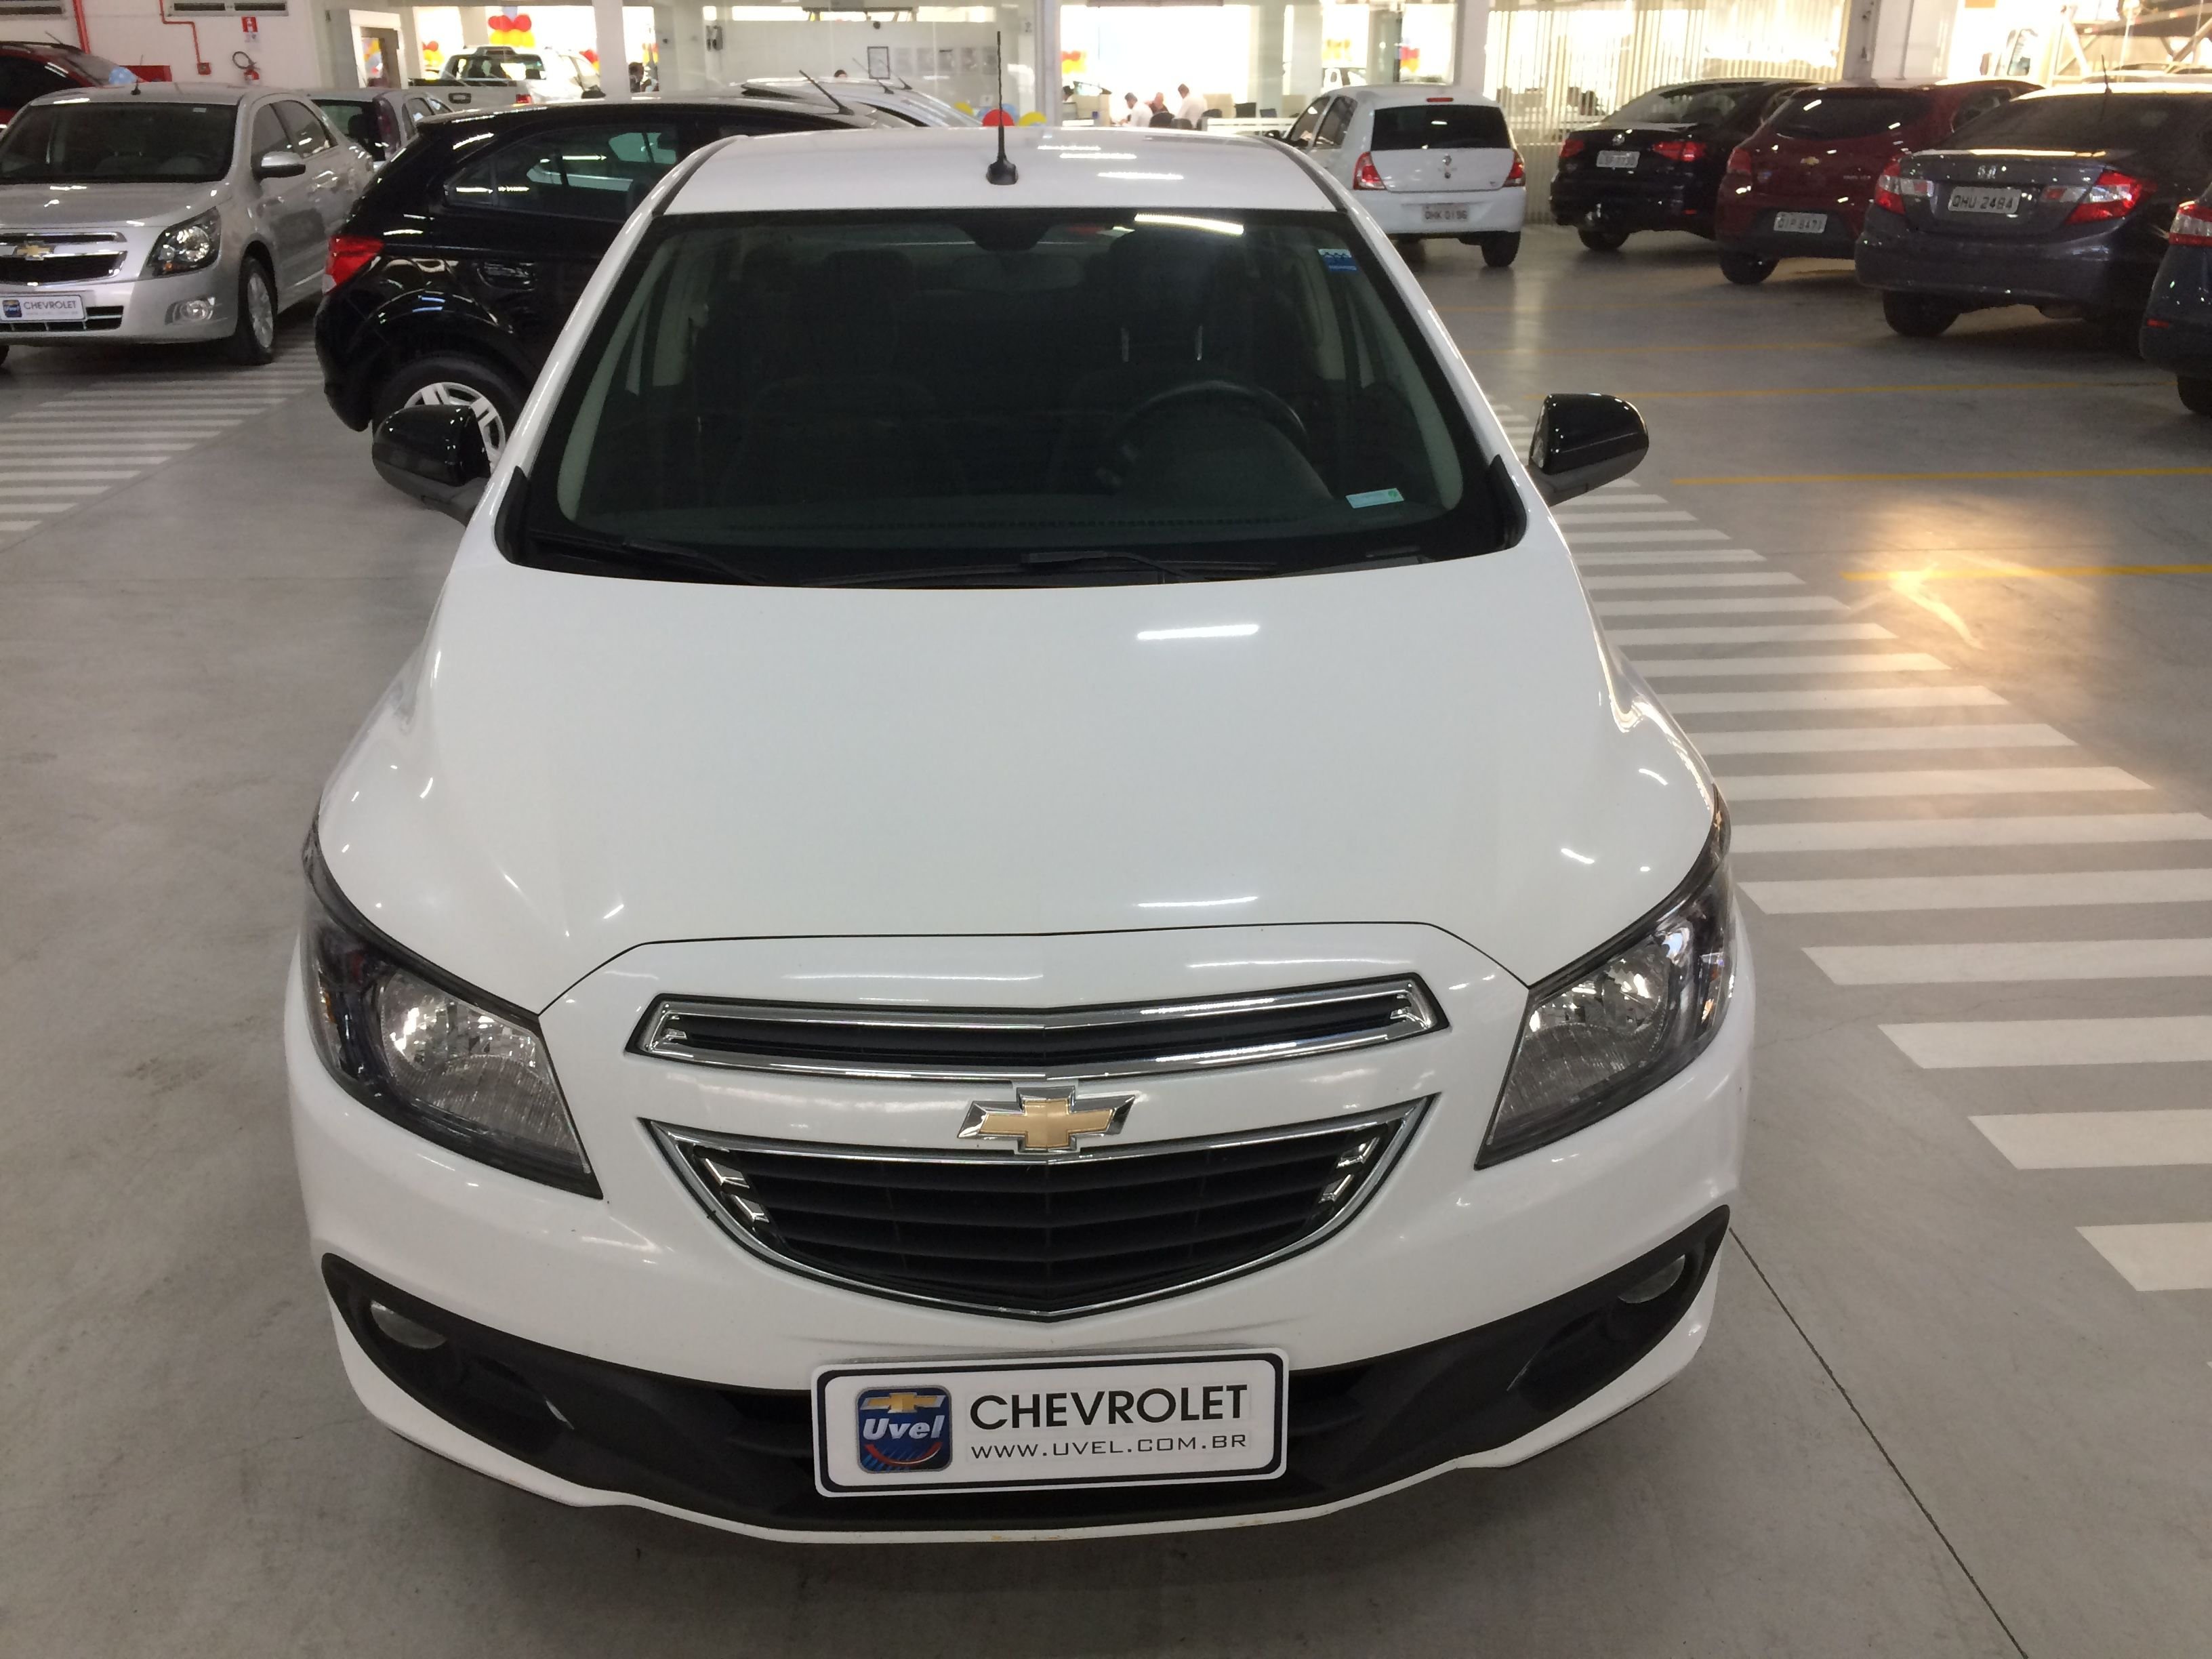 Chevrolet PRISMA ADVANTAGE 1.0 2015